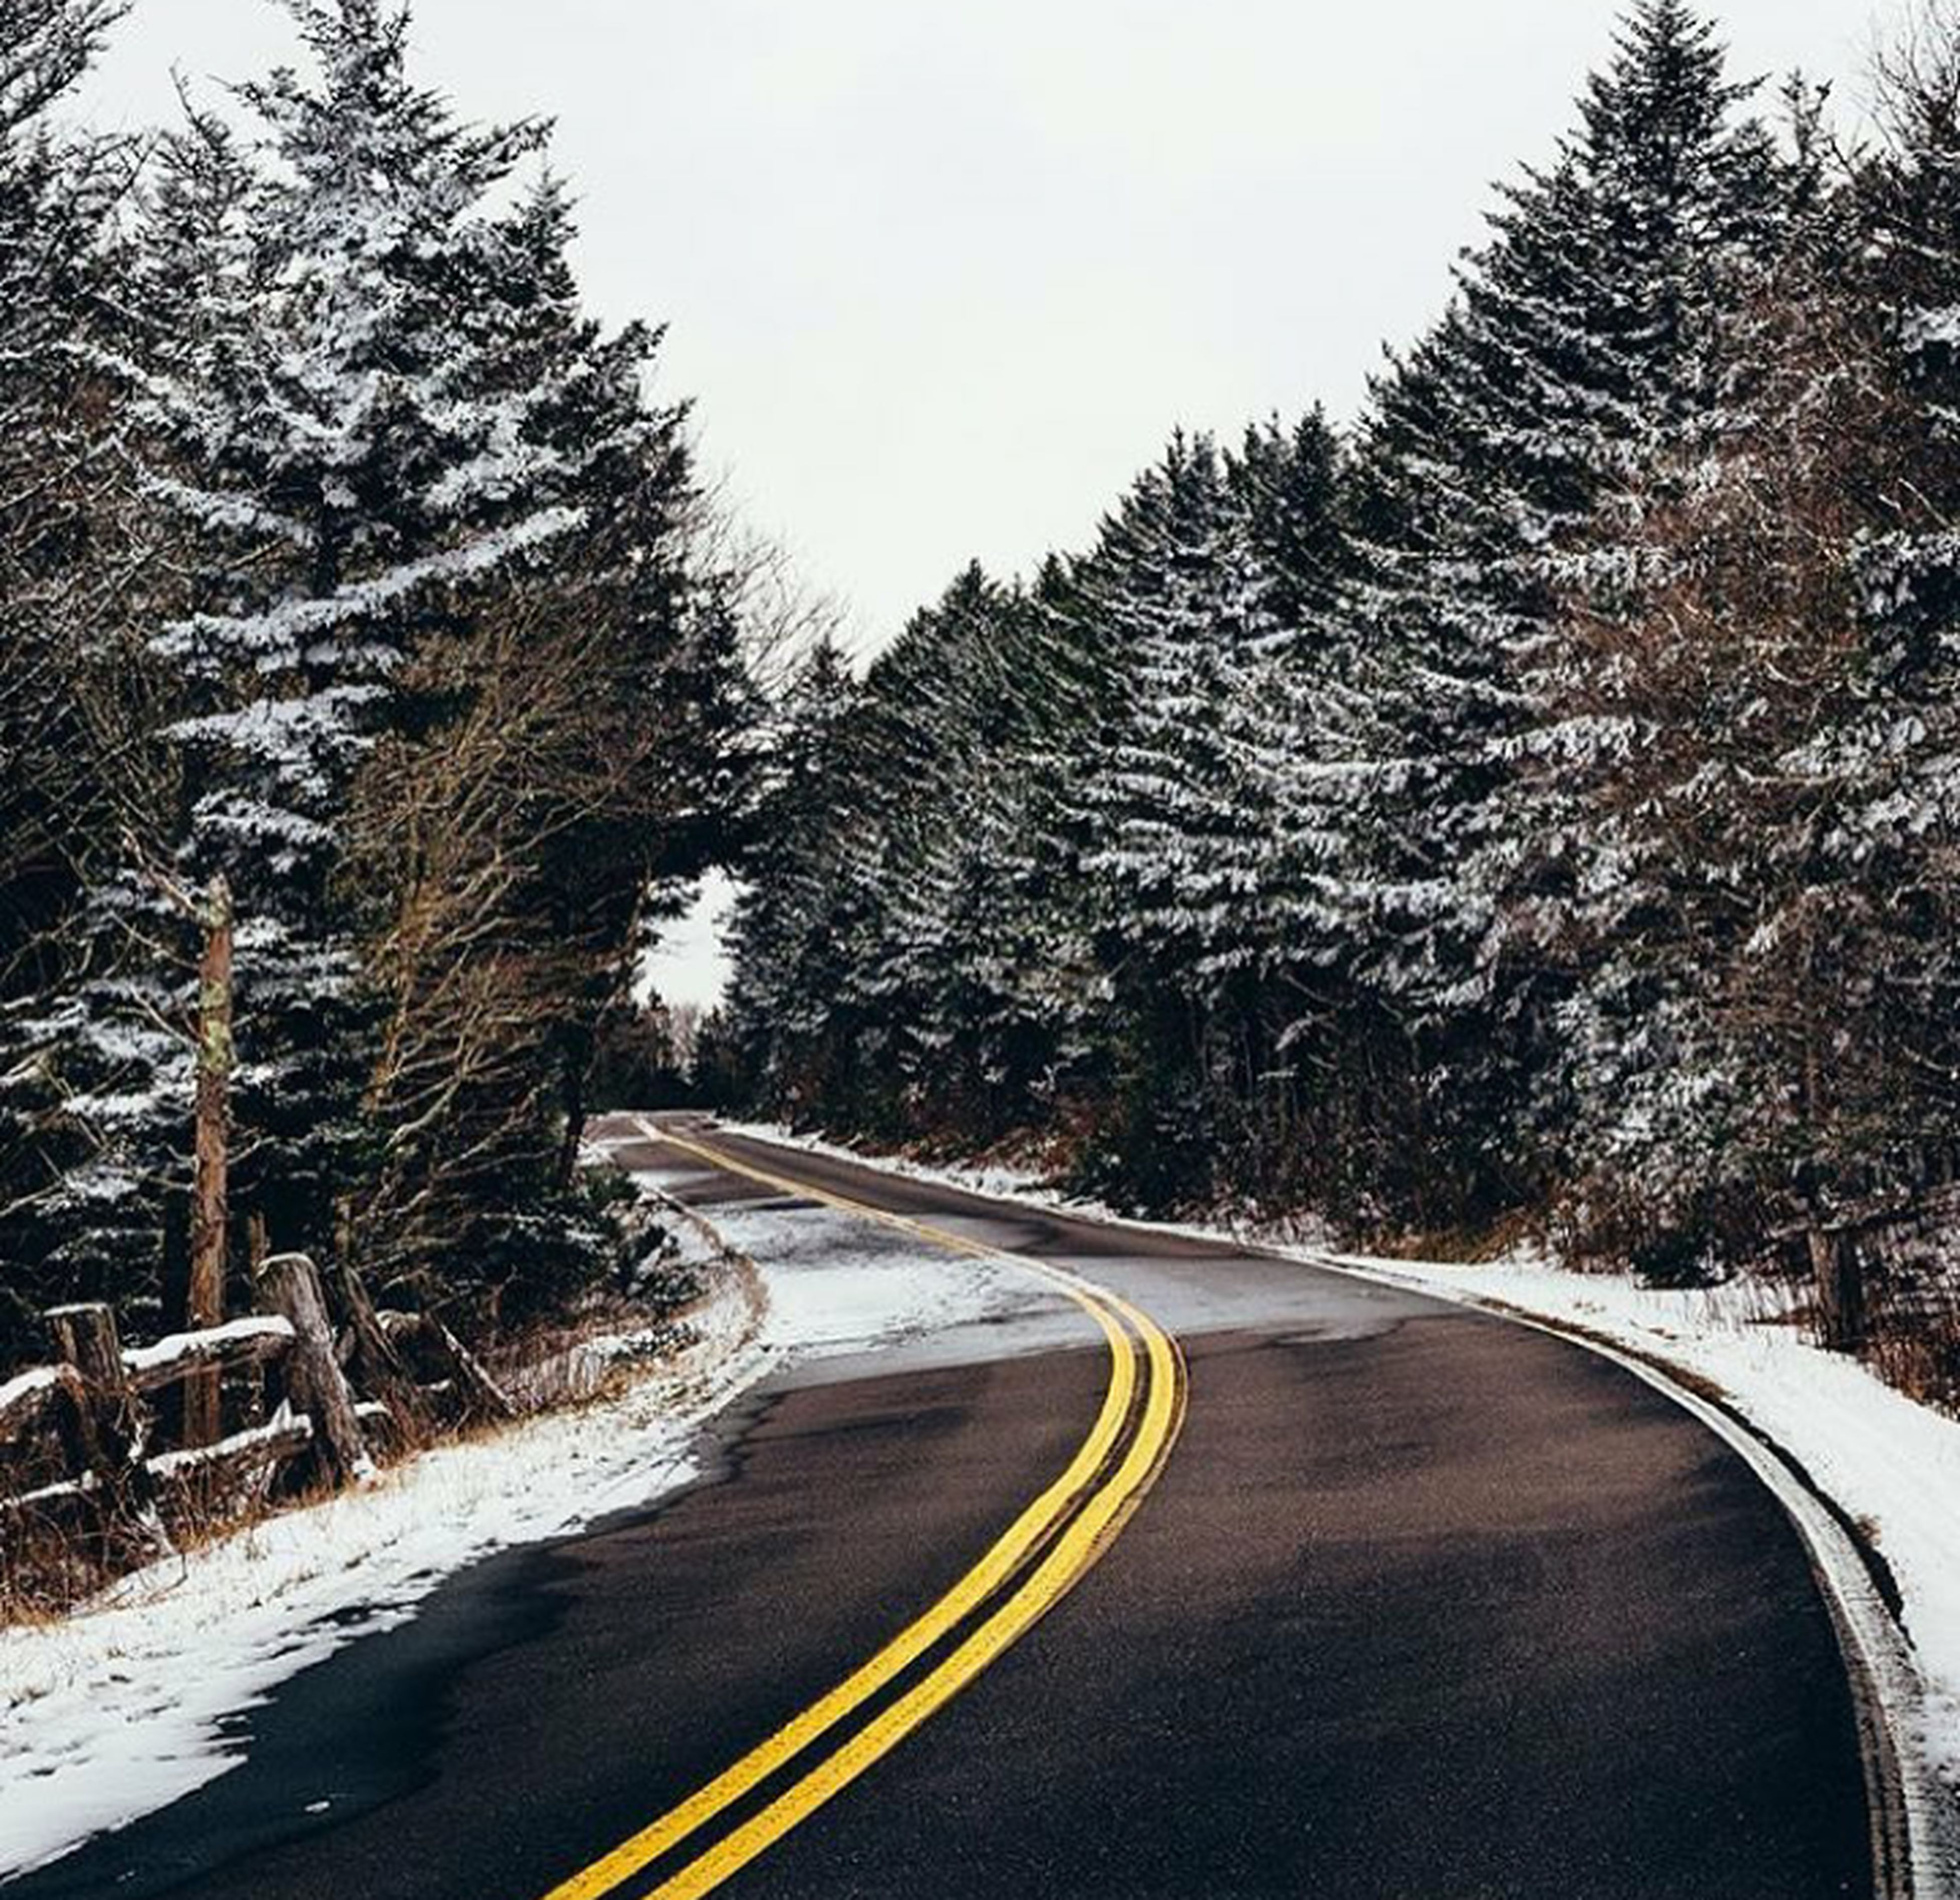 tree, road, the way forward, transportation, no people, winding road, highway, forest, outdoors, nature, landscape, beauty in nature, day, sky